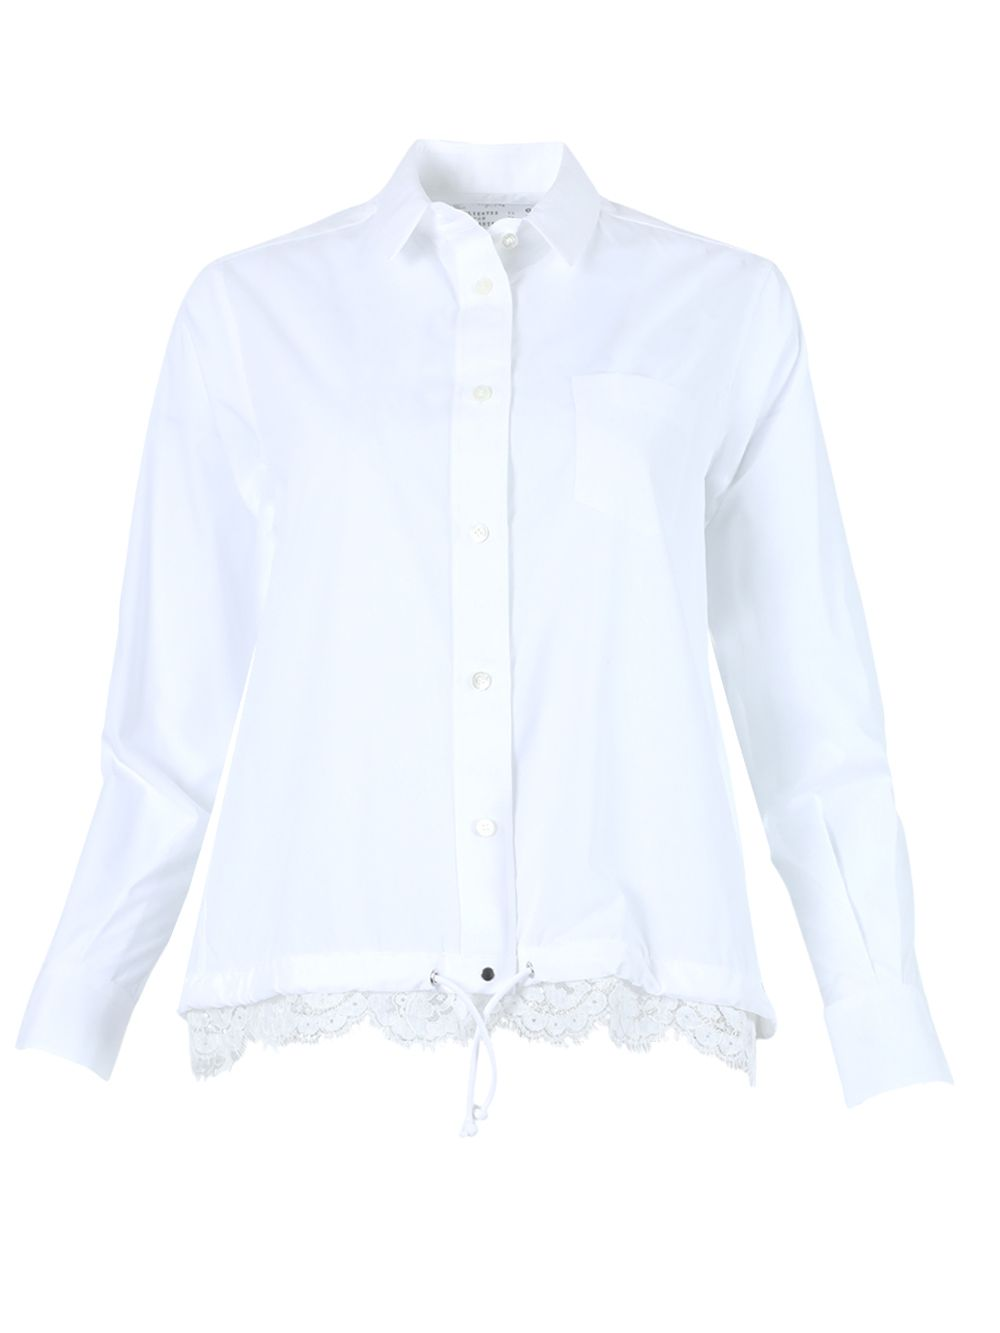 Sacai WHITE POPLIN LACE SHIRT